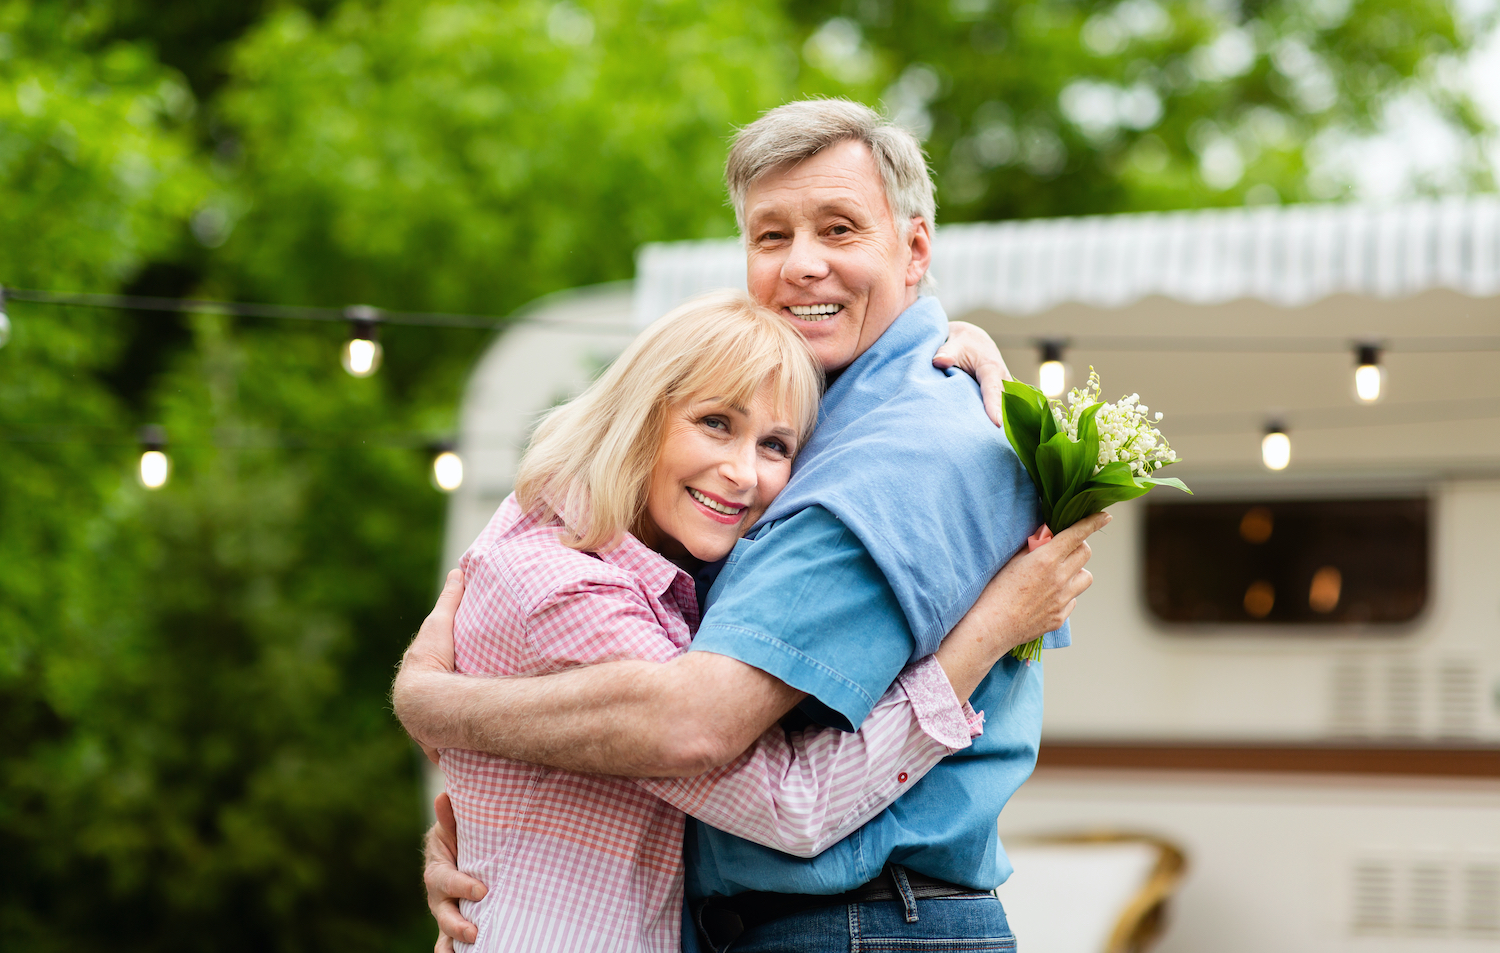 Loving Couple with Camper and Flowers